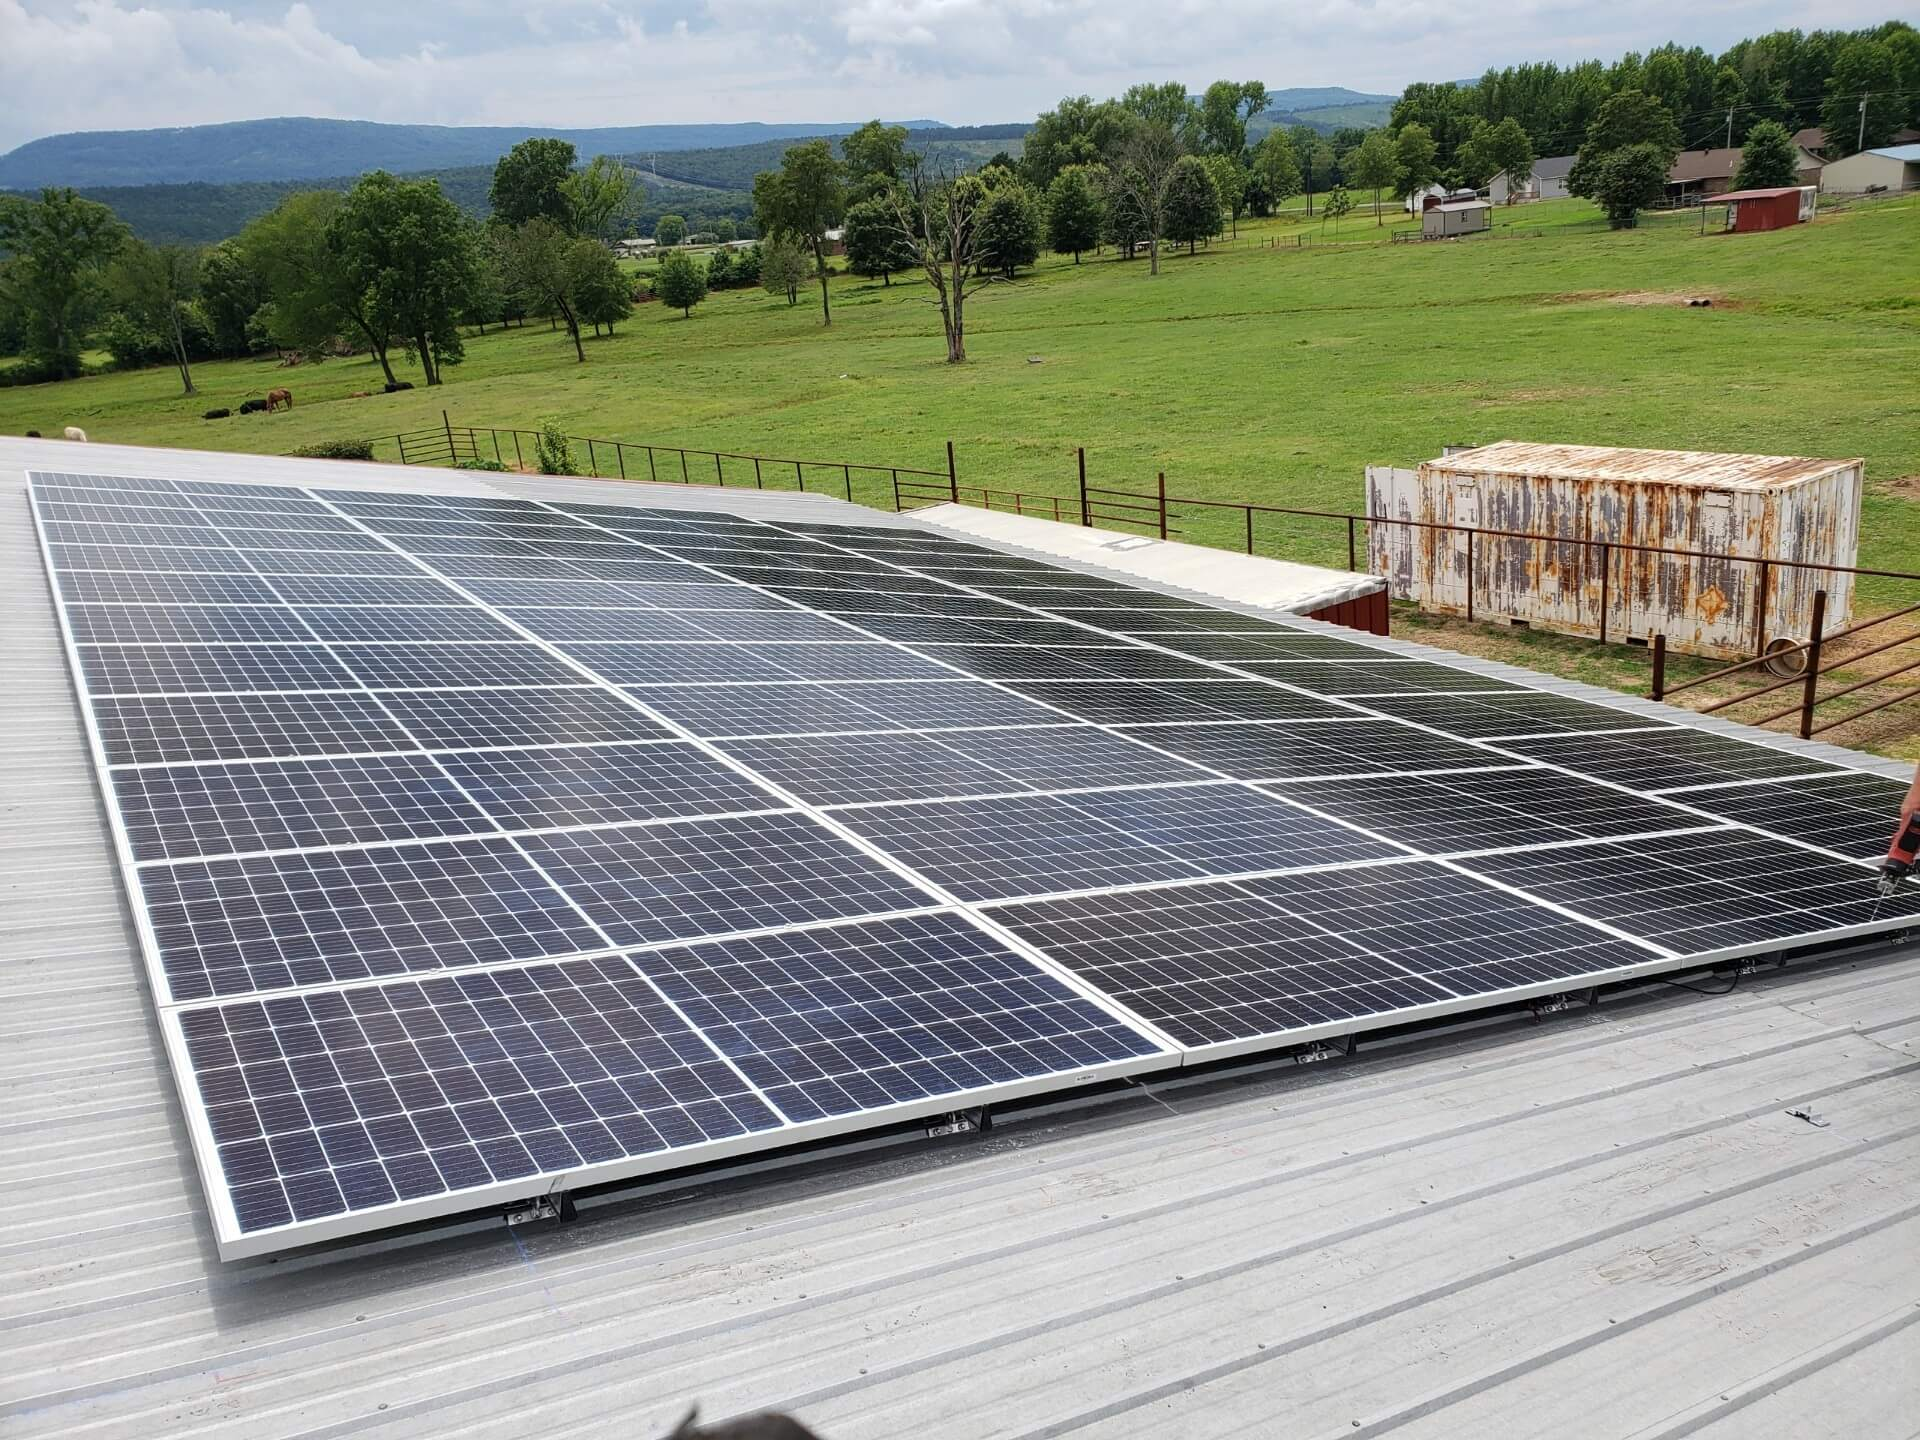 Seal Solar project in Cabot, AR